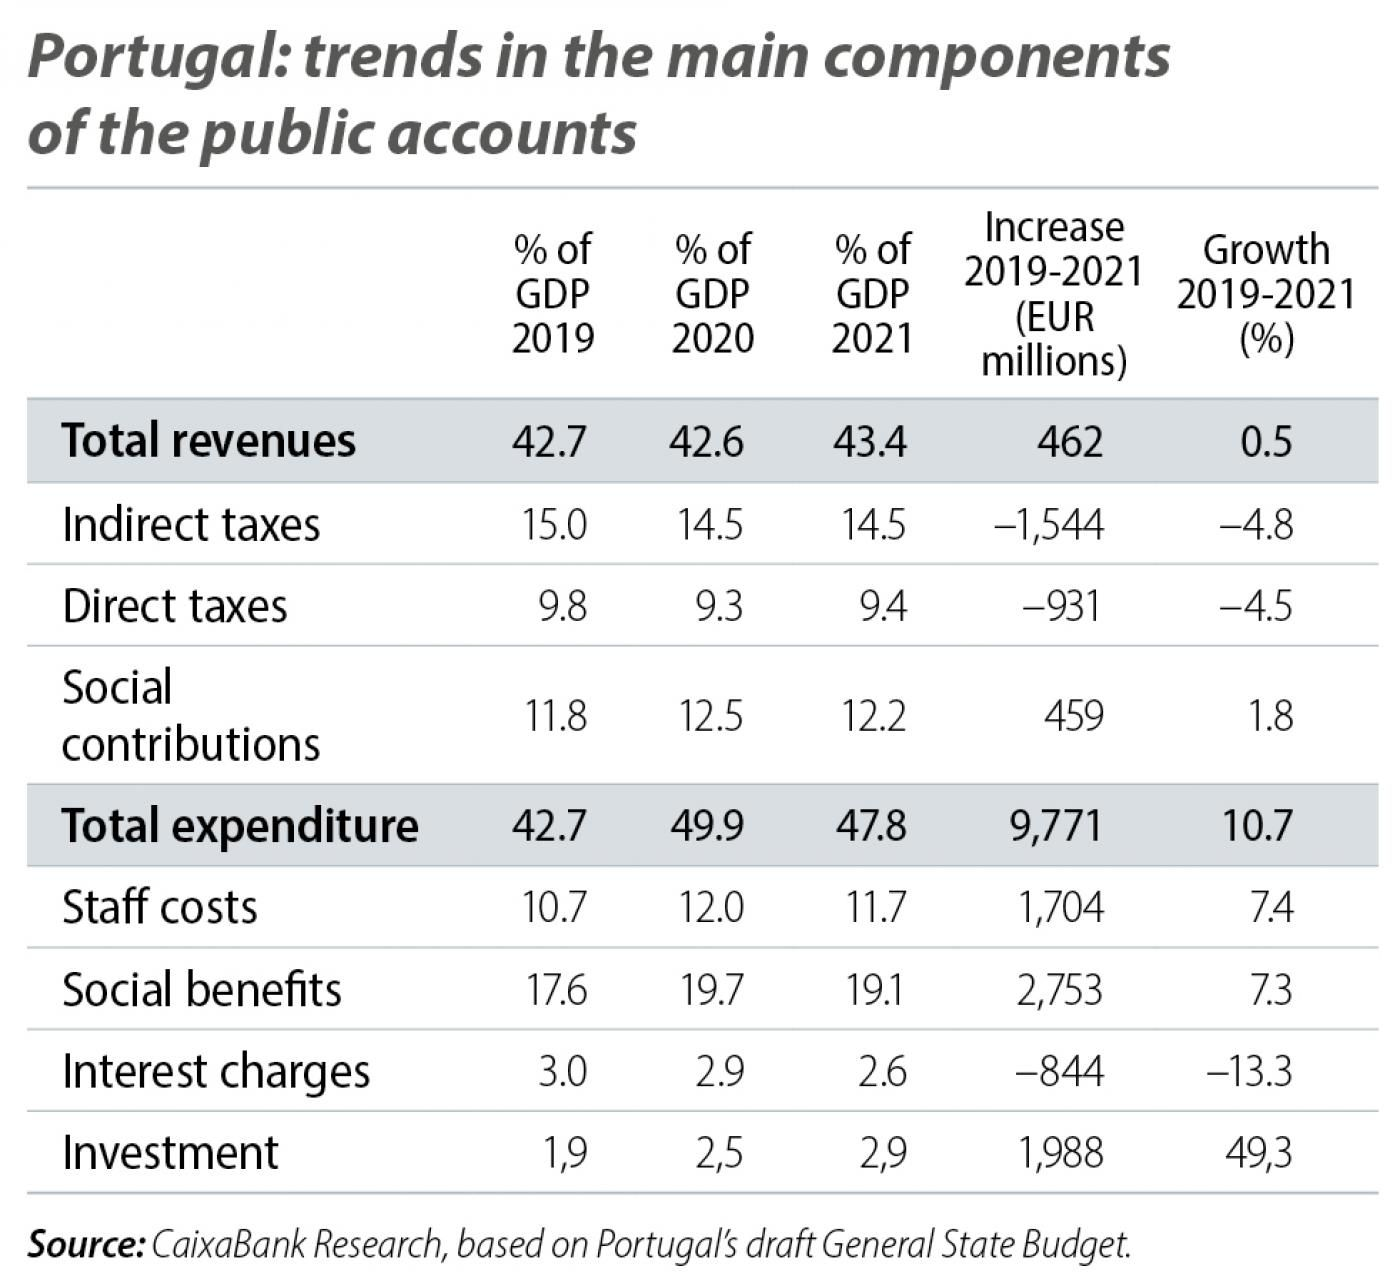 Portugal: trends in the main components of the public accounts